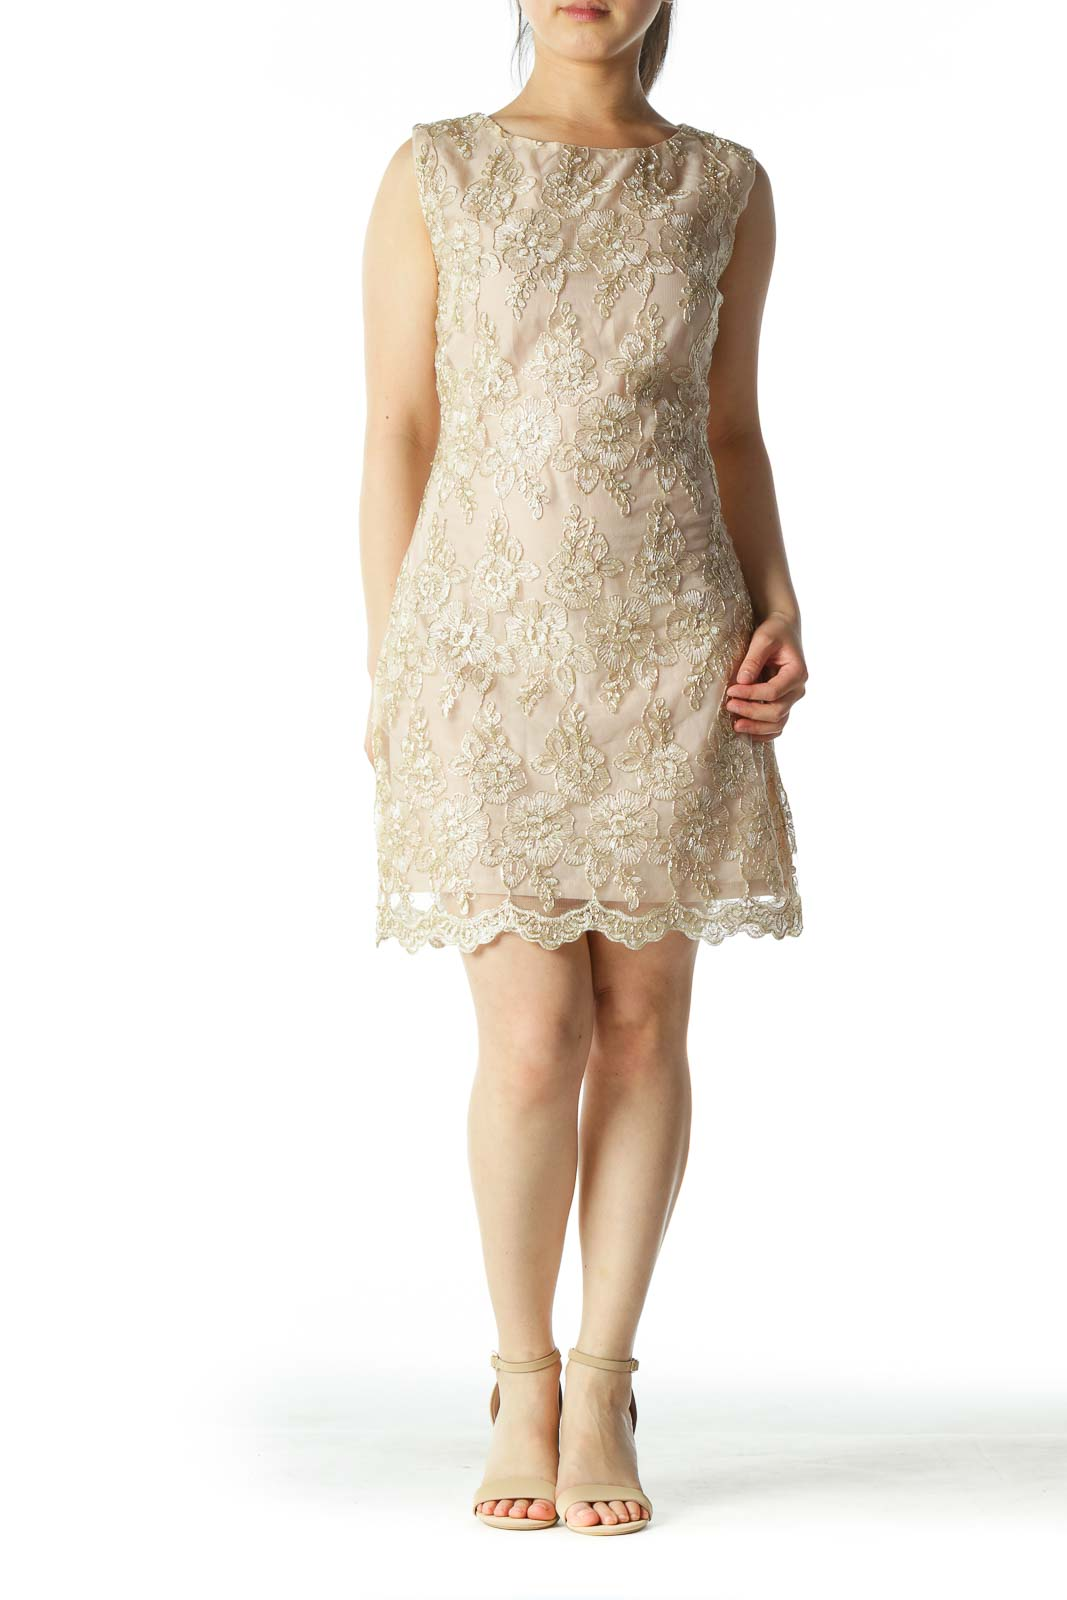 Beige/Gold Lace Flower Embroidery Cocktail Dress